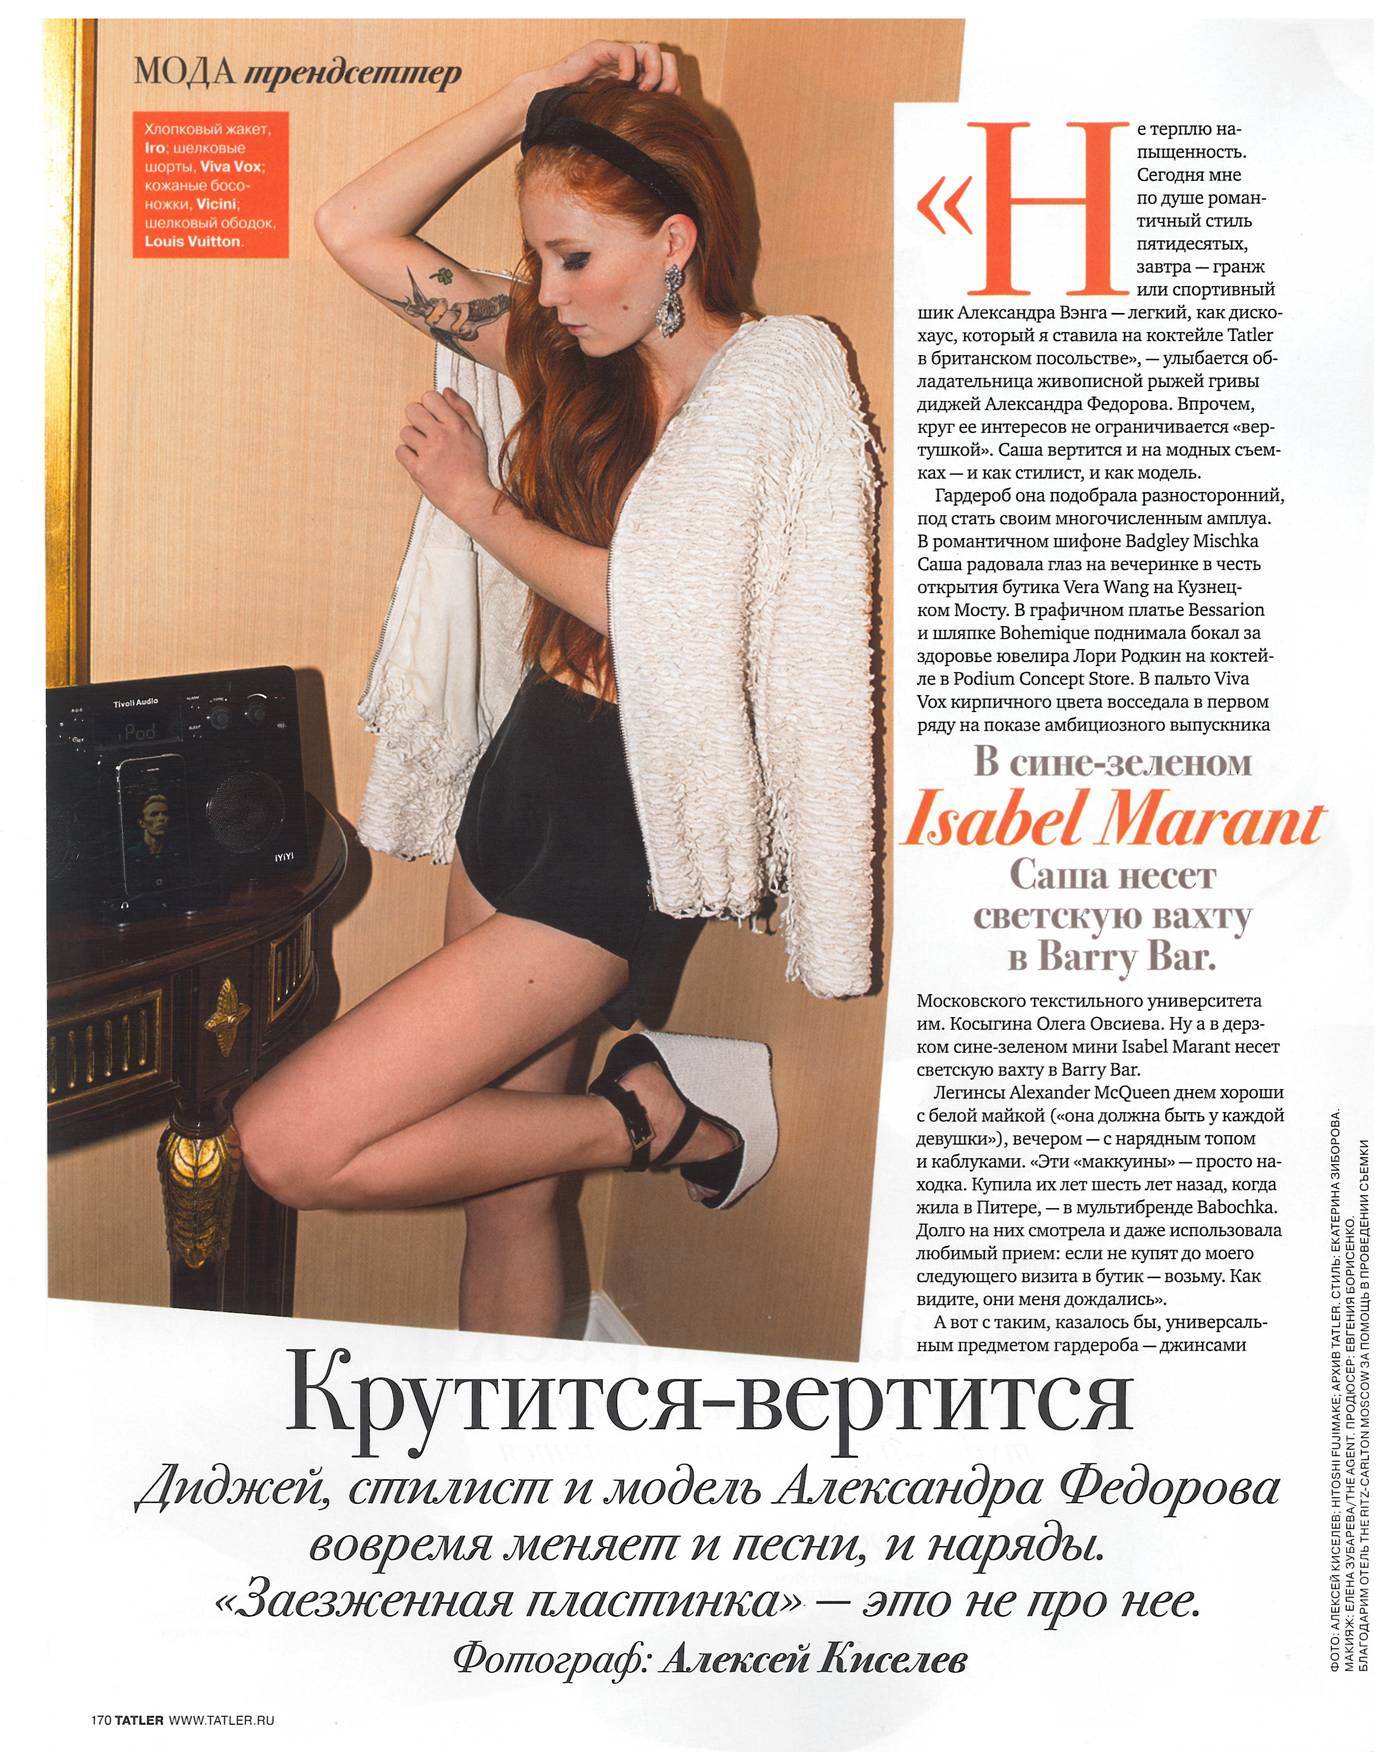 tatler magazine_march issue_alexandra fedorova.jpg